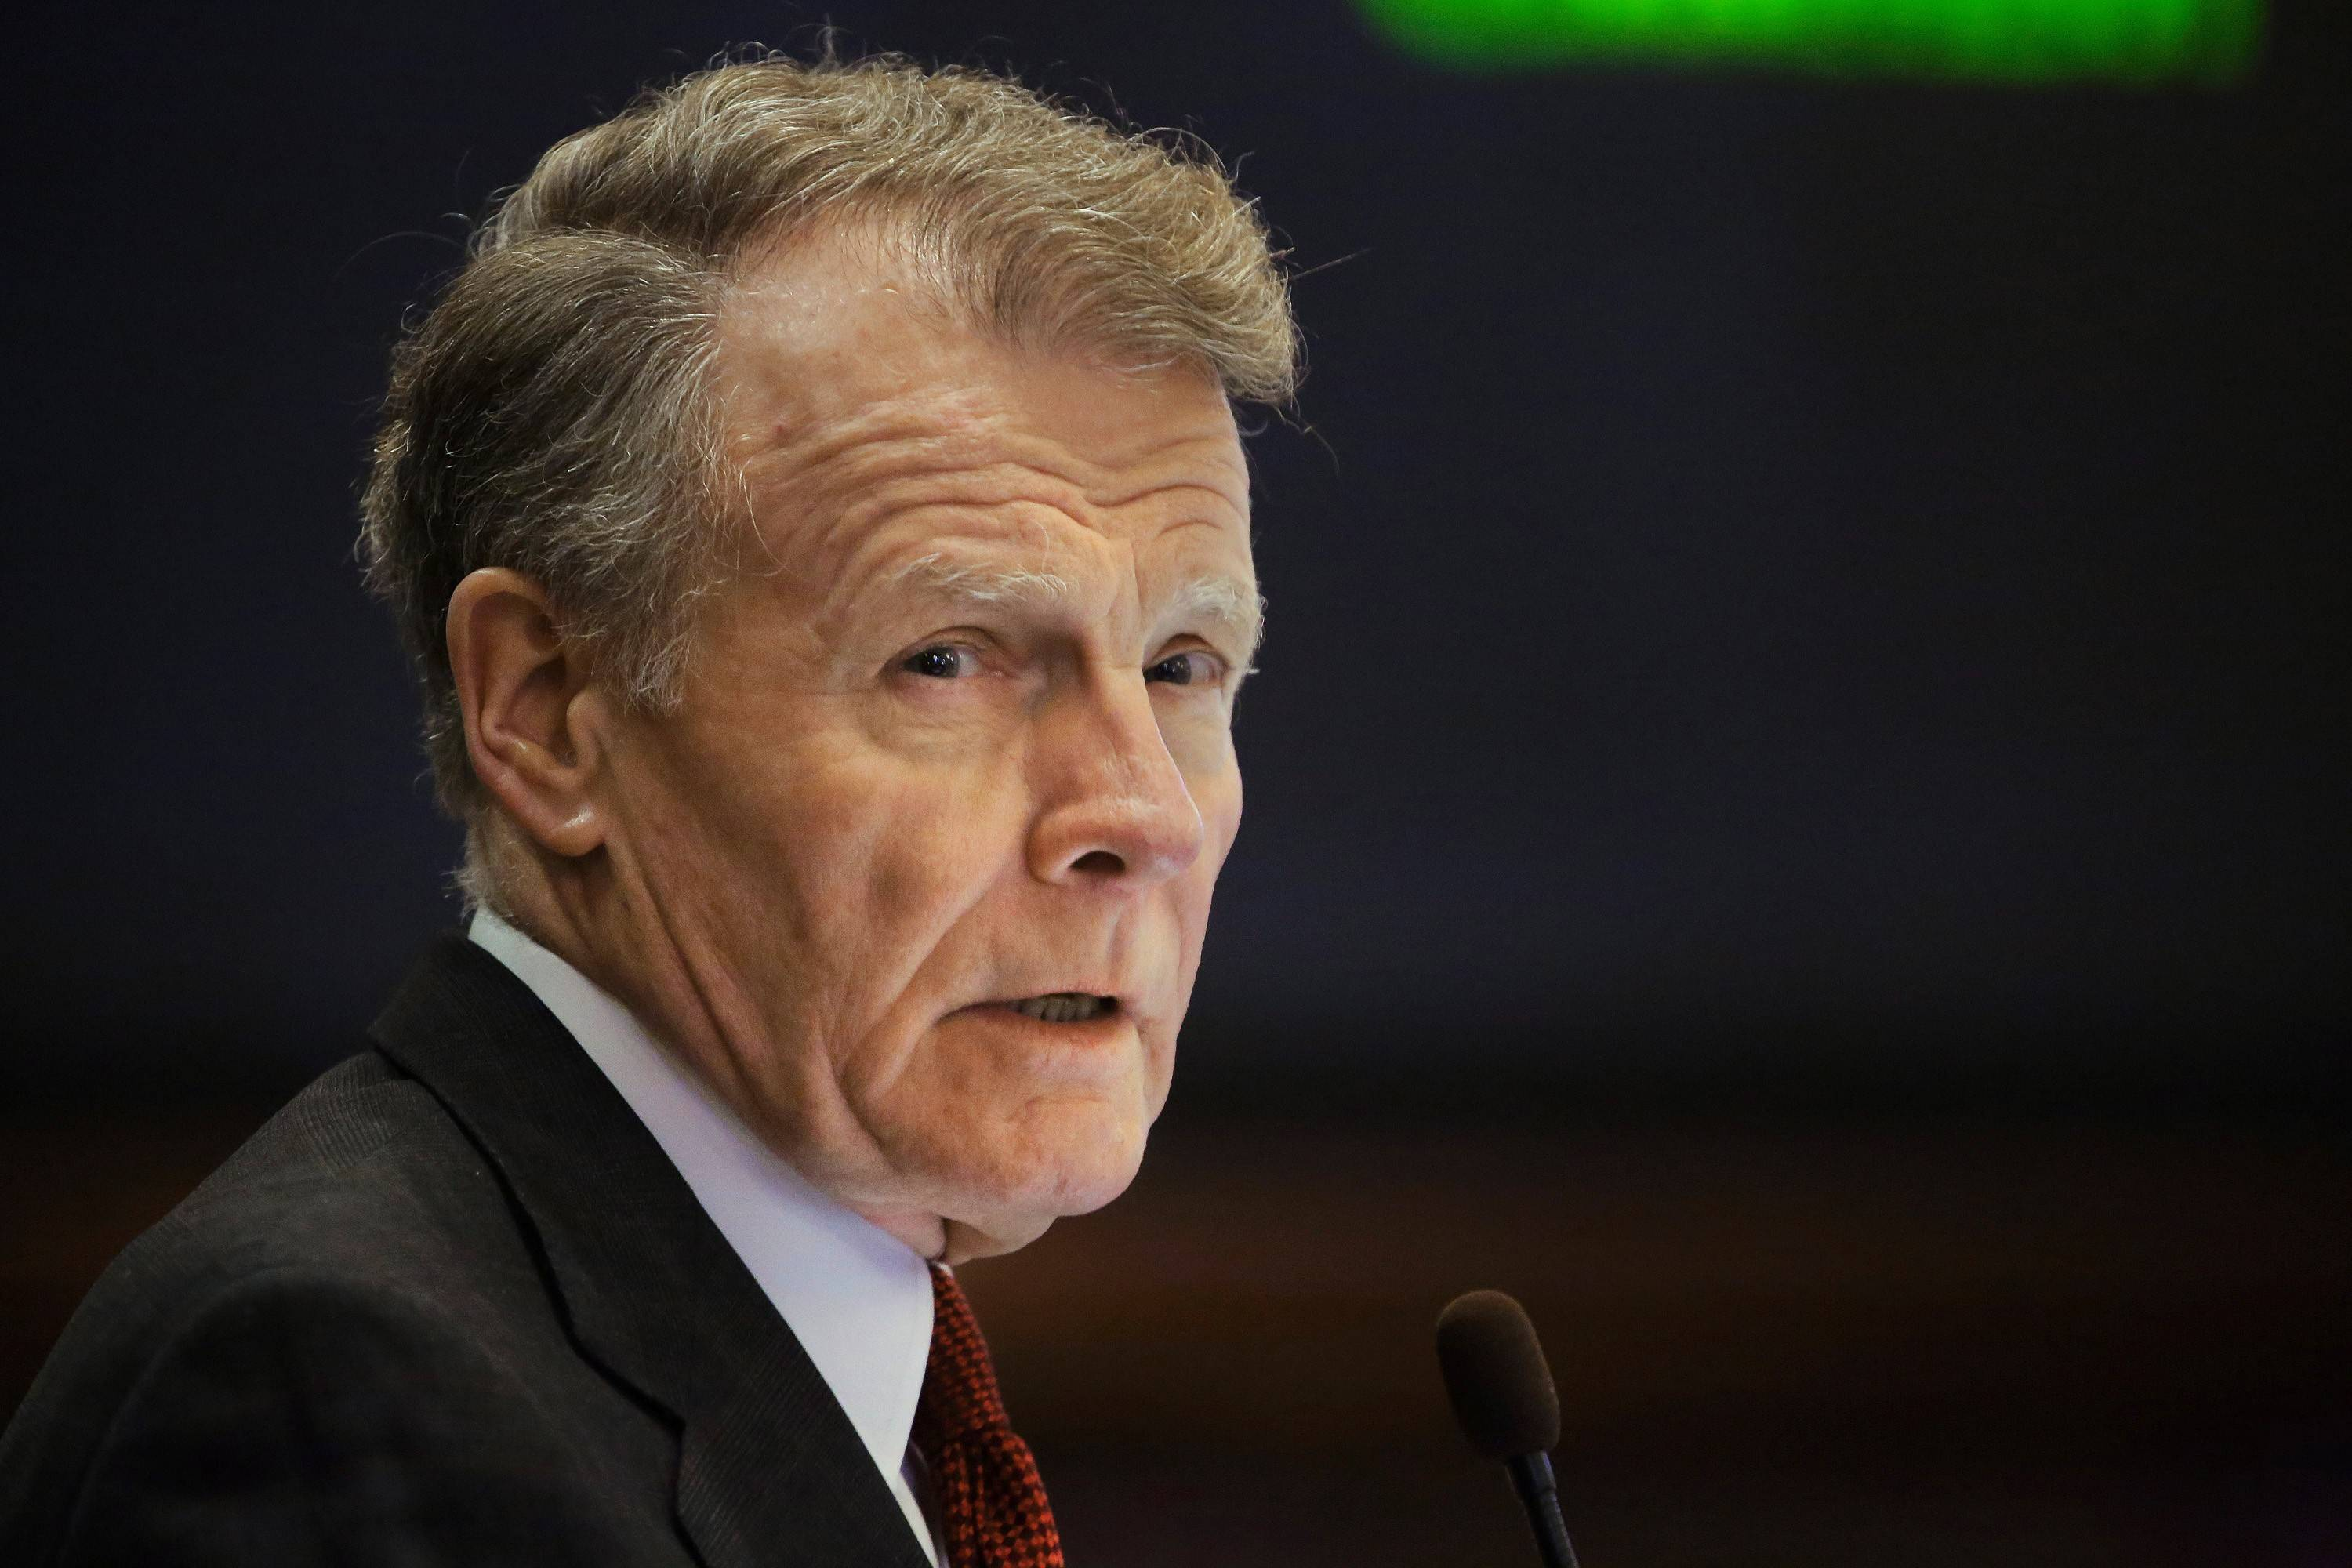 Powerful Democratic House Speaker Michael Madigan is a strong advocate for the power of lawmakers in government, and he has the final say on what legislation is called for a vote in his chamber. To get his agenda moving, Gov. Bruce Rauner will have to work with Madigan.